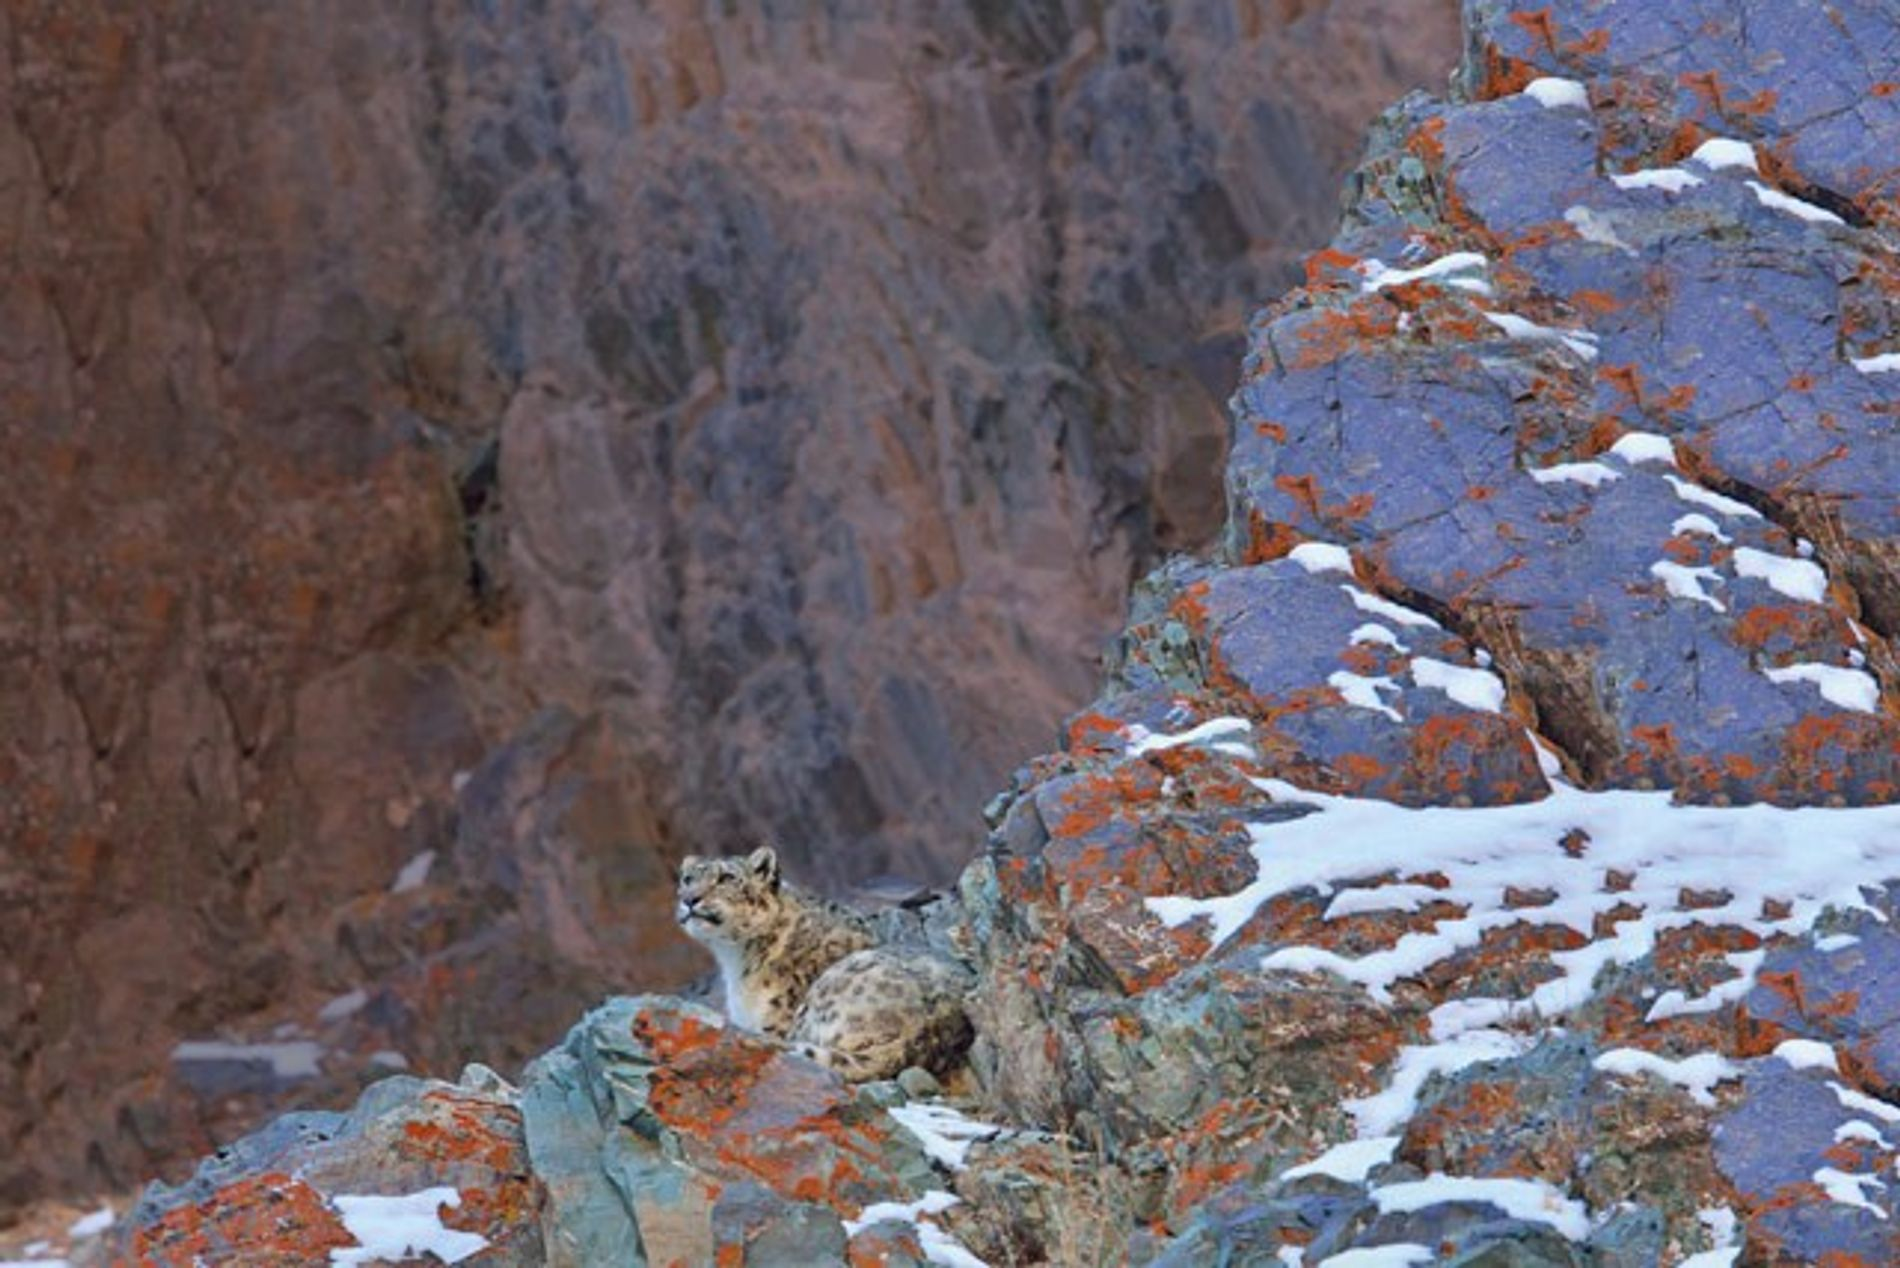 Searching for snow leopards in India